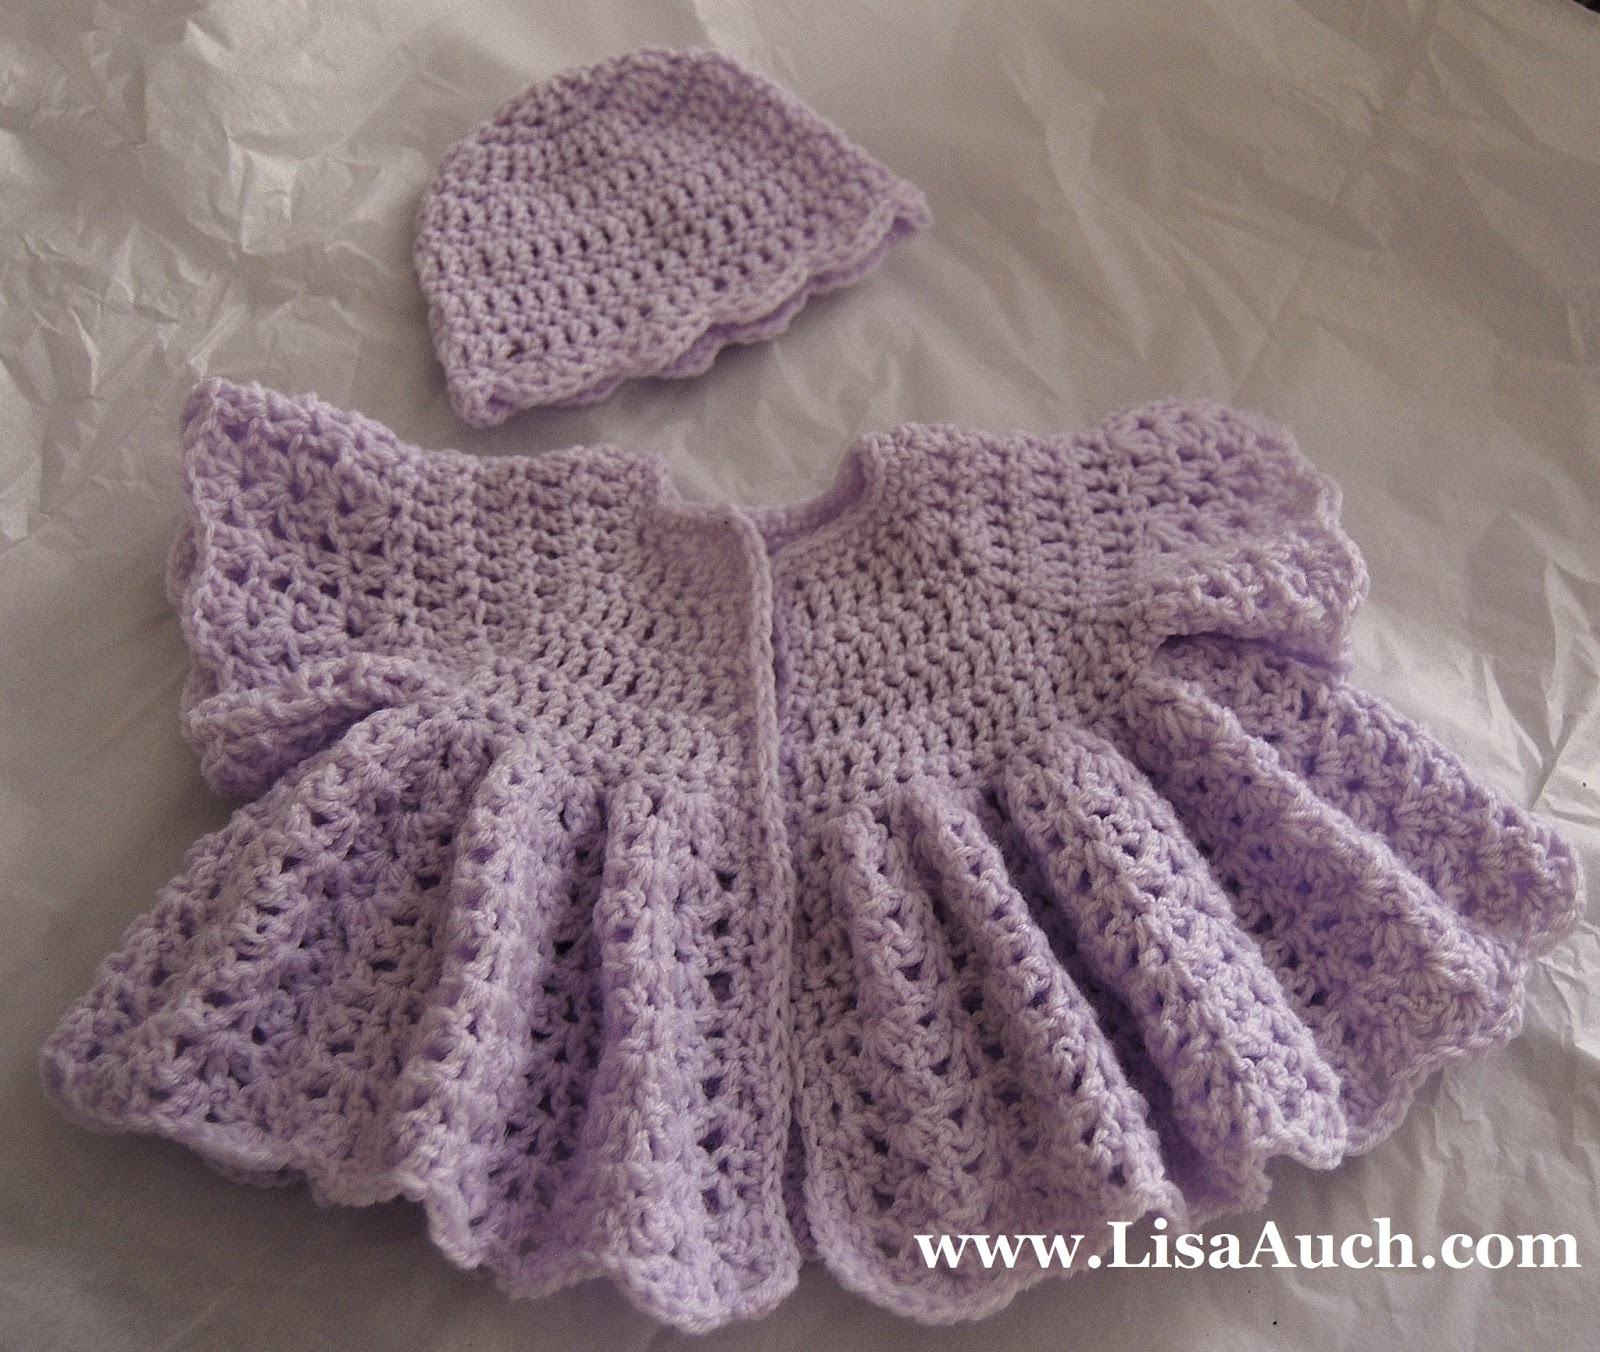 Crochet Patterns Videos Free : Free Crochet Patterns-crochet baby layette patterns-baby sweater ...